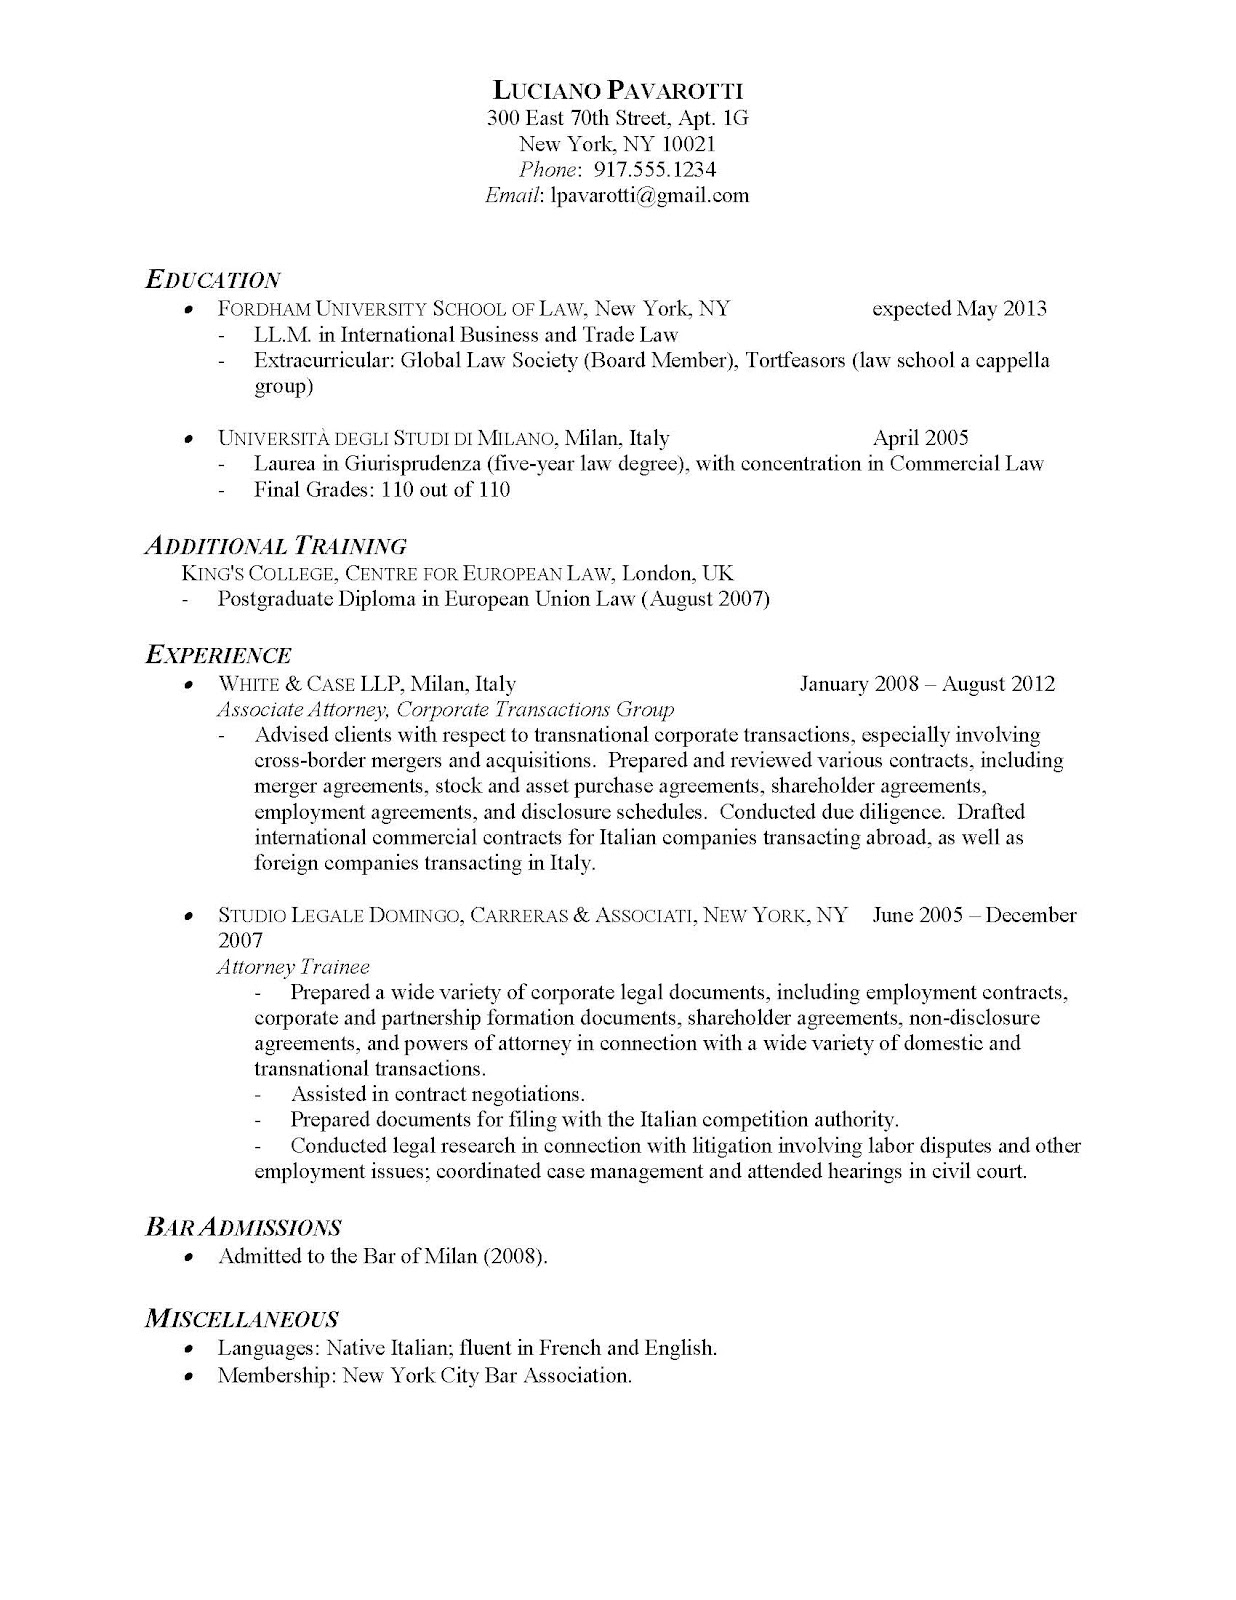 Picnictoimpeachus  Surprising Resume Reviewer Resume Reviewer Medioxco With Foxy Resume Reviewer Hiringlibrariansresumedoc  Hiringlibrariansresumedoc   With Astounding Handyman Resume Also Mccombs Resume Template In Addition Printable Resume And Writing A Resume Objective As Well As Keywords To Use In A Resume Additionally Download Resume Template From Medioxco With Picnictoimpeachus  Foxy Resume Reviewer Resume Reviewer Medioxco With Astounding Resume Reviewer Hiringlibrariansresumedoc  Hiringlibrariansresumedoc   And Surprising Handyman Resume Also Mccombs Resume Template In Addition Printable Resume From Medioxco